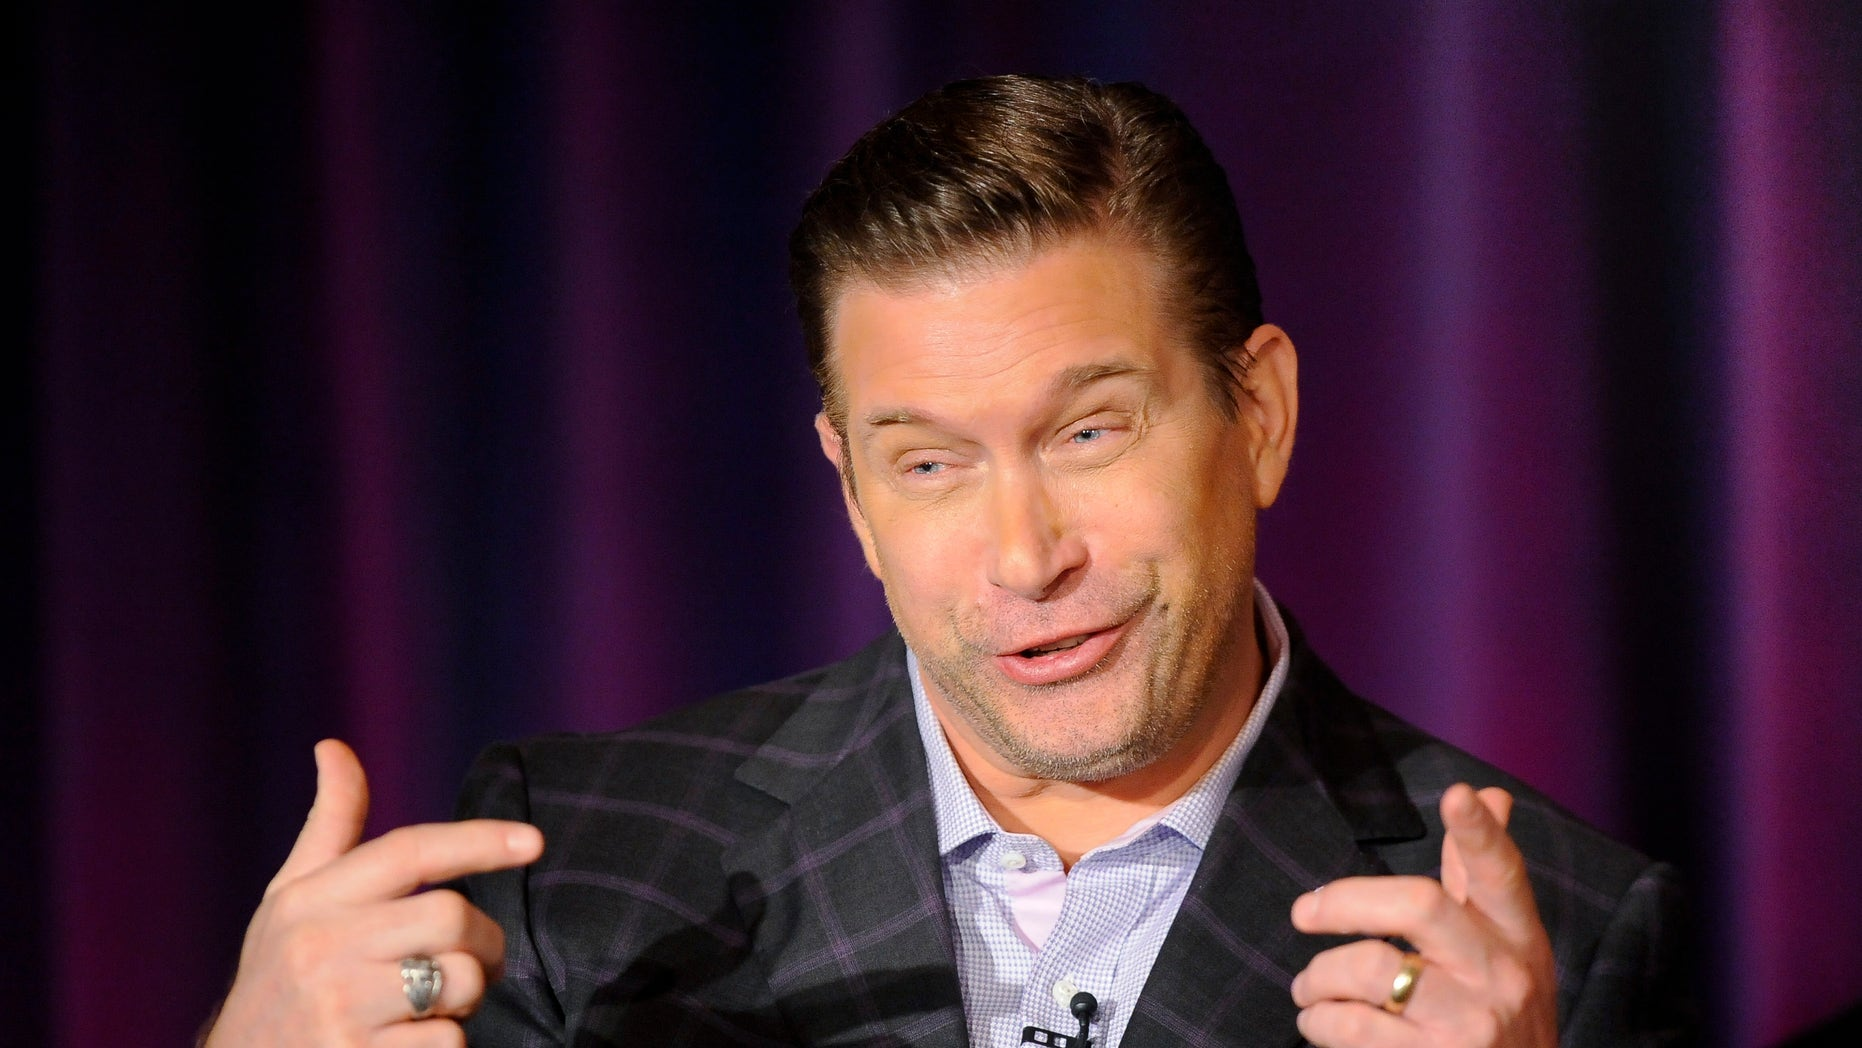 """January 6, 2013. Stephen Baldwin takes part in a panel discussion of NBC's series """"All-Star Celebrity Apprentice"""" during the 2013 Winter Press Tour for the Television Critics Association in Pasadena, California."""